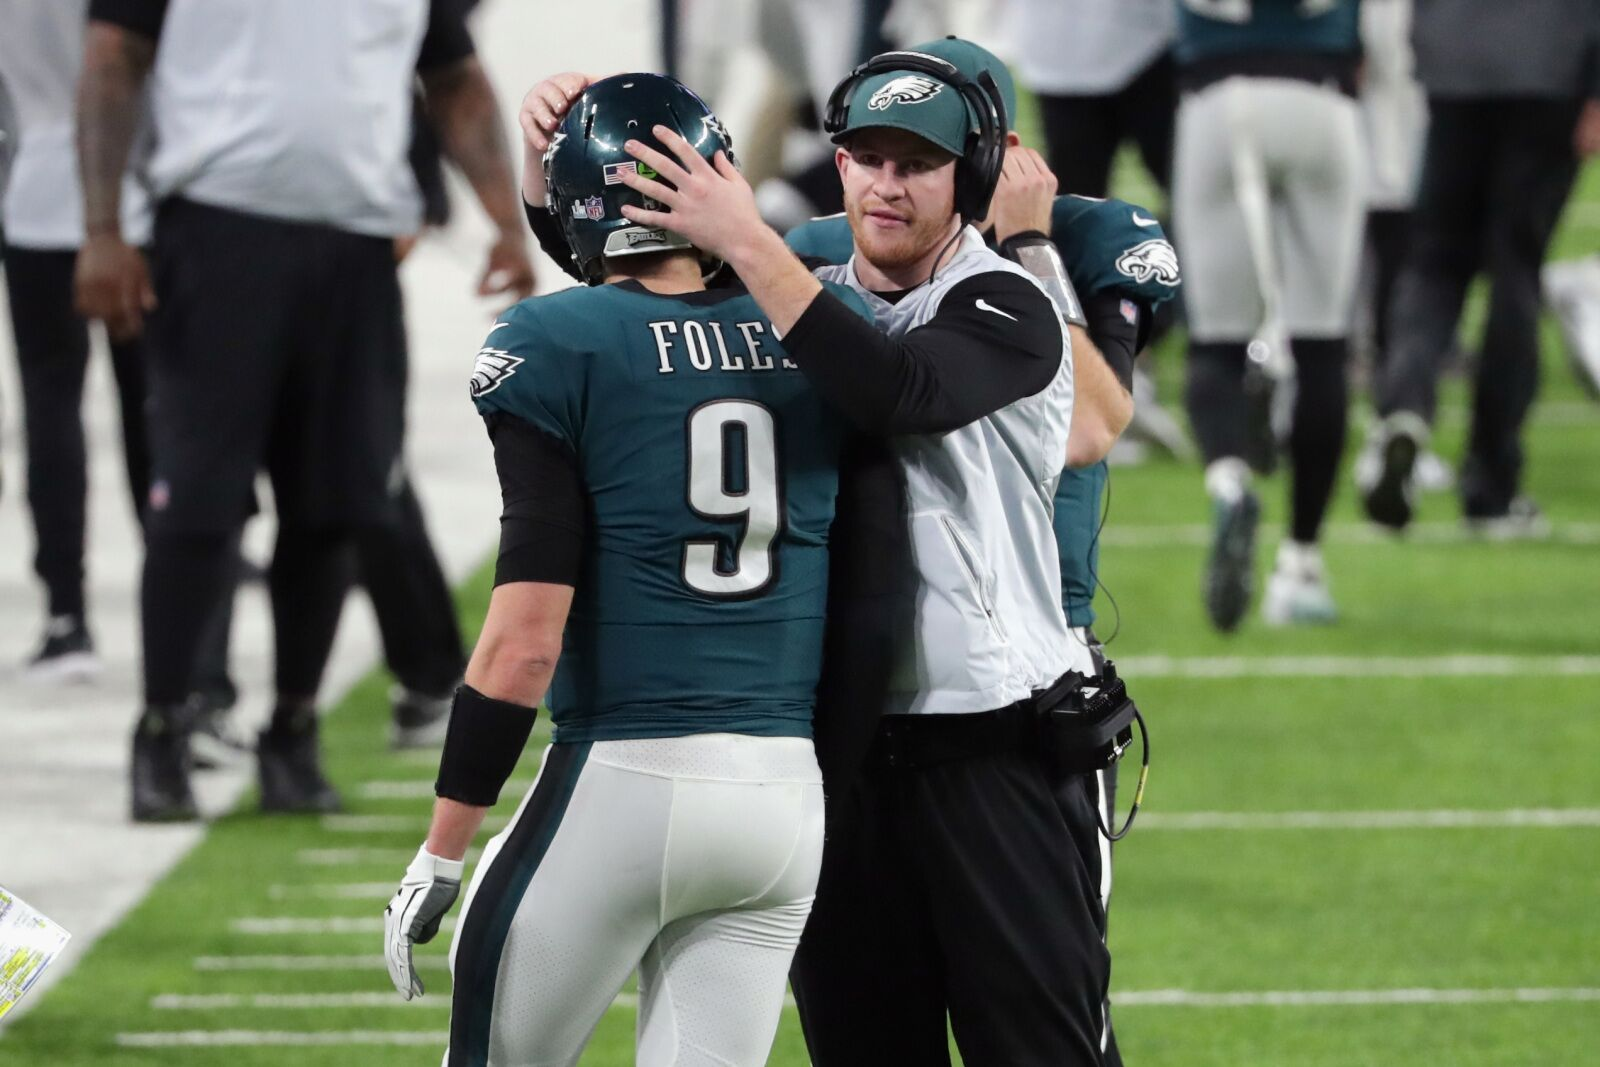 MINNEAPOLIS, MN - FEBRUARY 04: Nick Foles #9 of the Philadelphia Eagles is congratulated by his teammate Carson Wentz #11 after his 11-yard touchdown pass during the fourth quarter against the New England Patriots in Super Bowl LII at U.S. Bank Stadium on February 4, 2018 in Minneapolis, Minnesota. (Photo by Streeter Lecka/Getty Images)